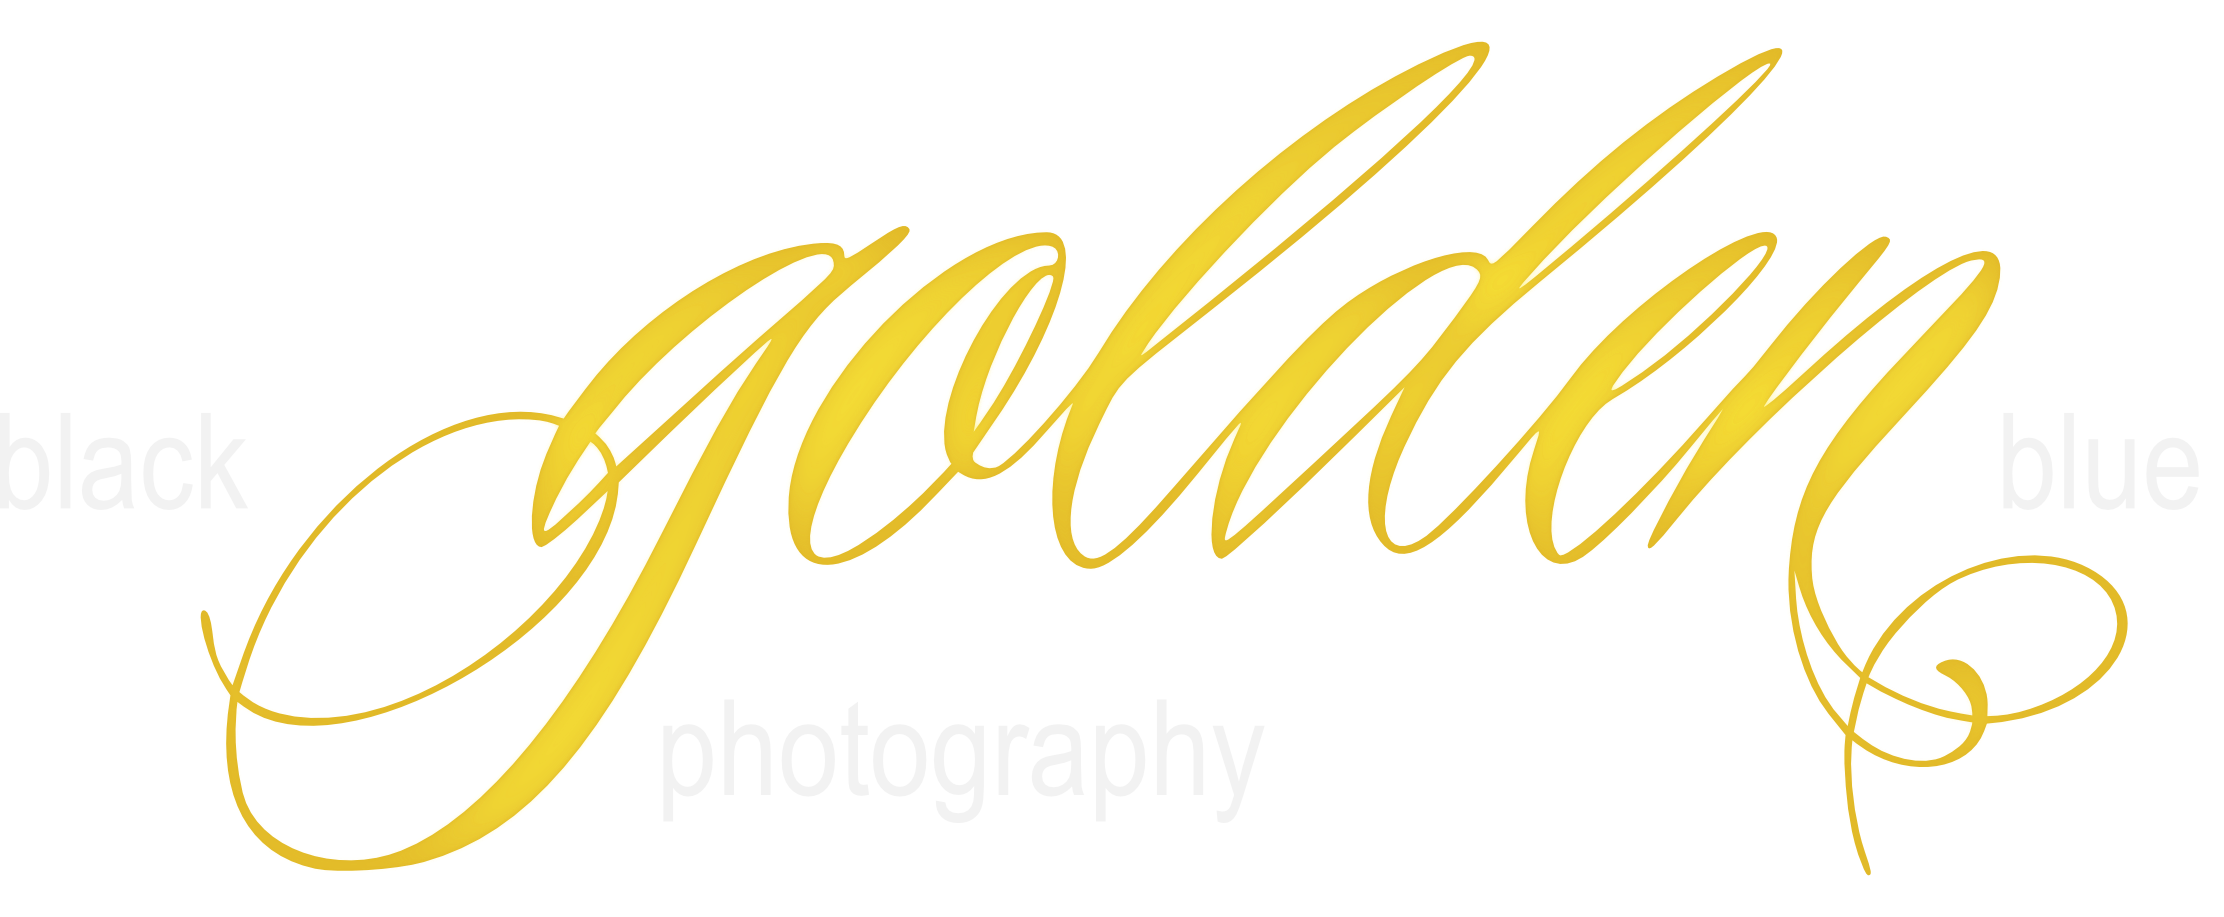 blackgoldenblue | photography » — blackgoldenblue —